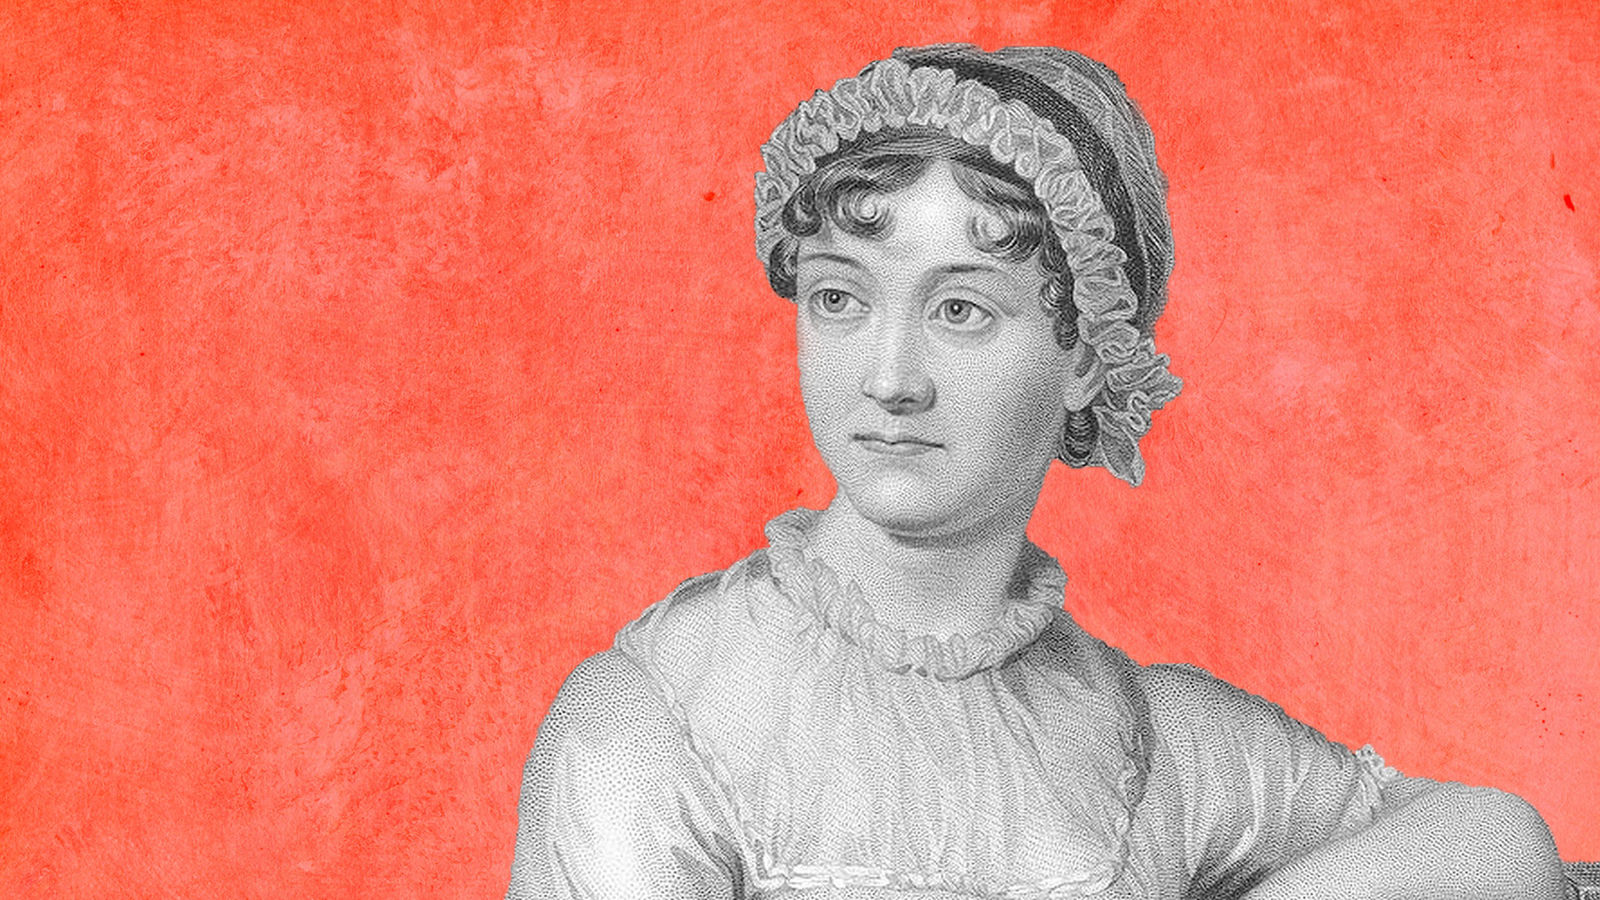 Dealing with pride and prejudice on social media